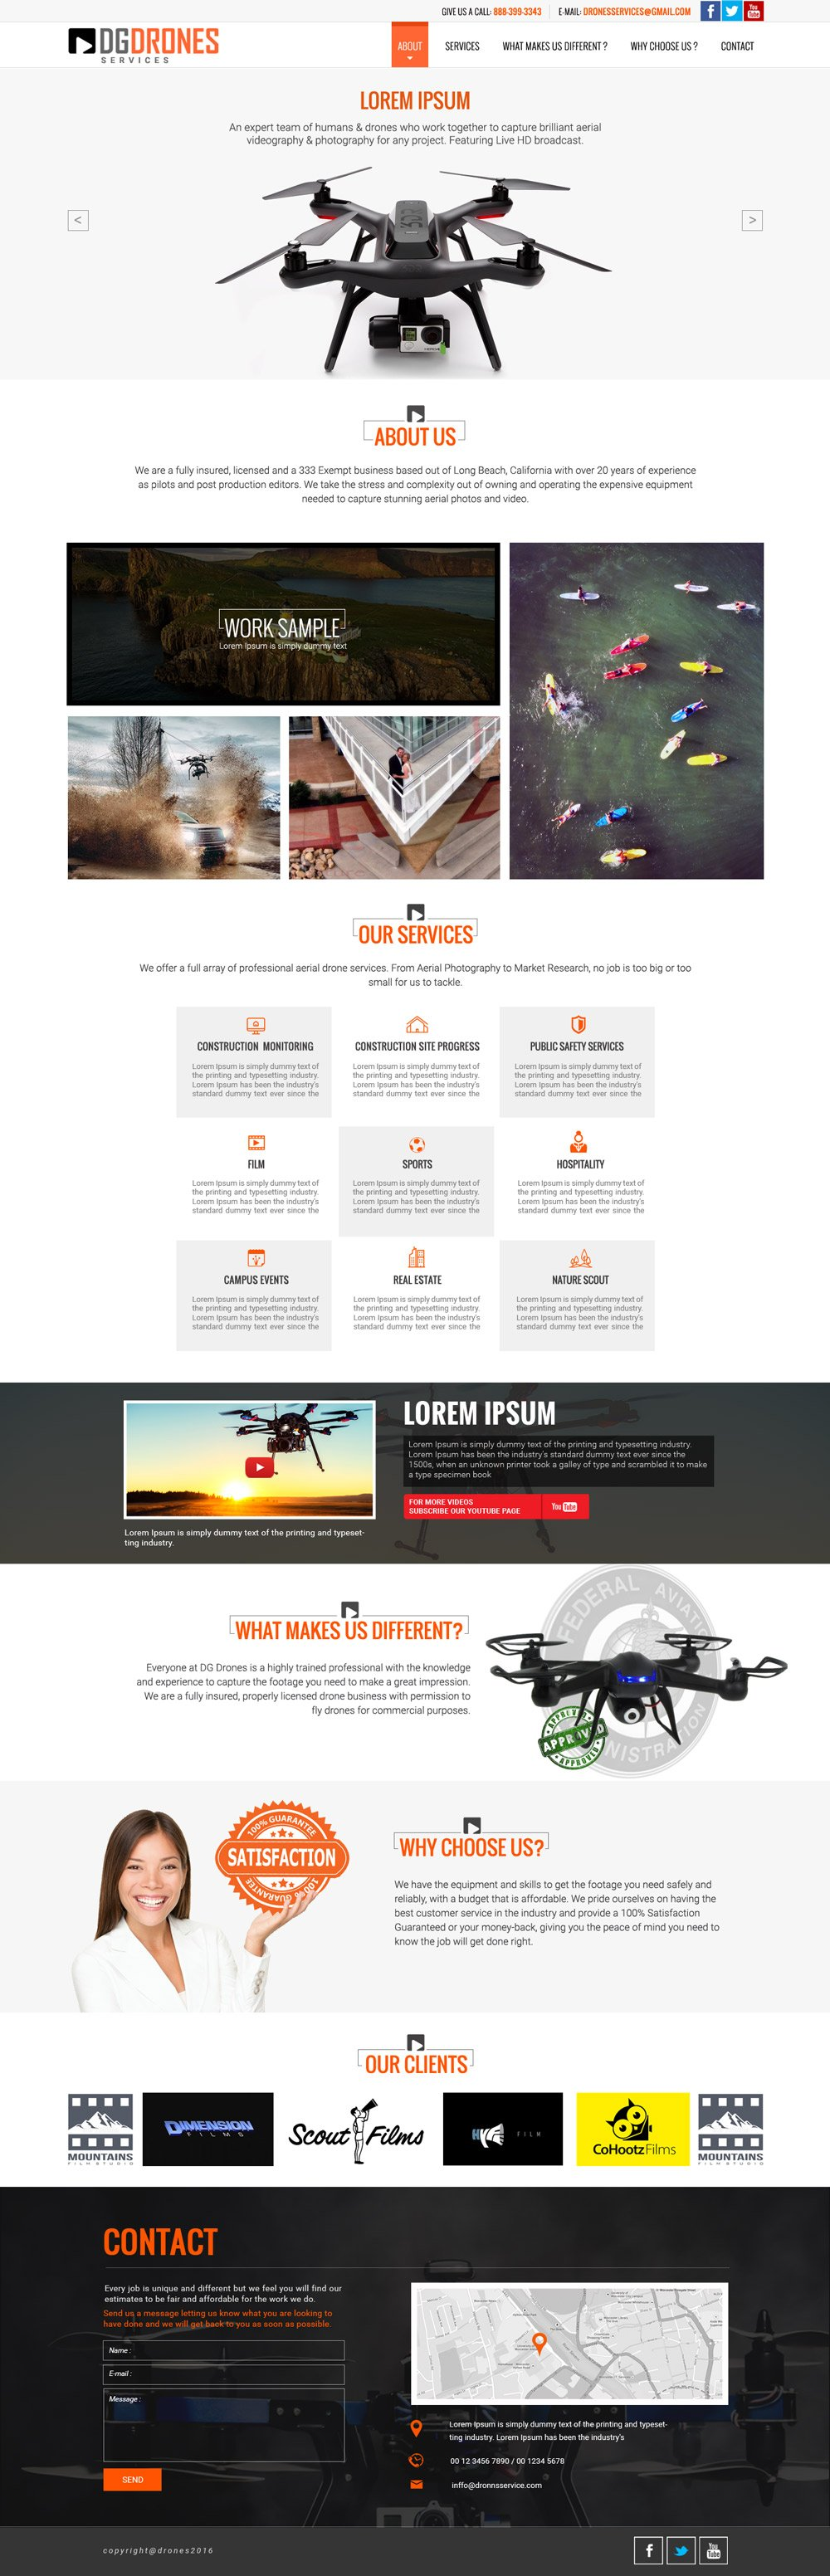 Drone Services logo design